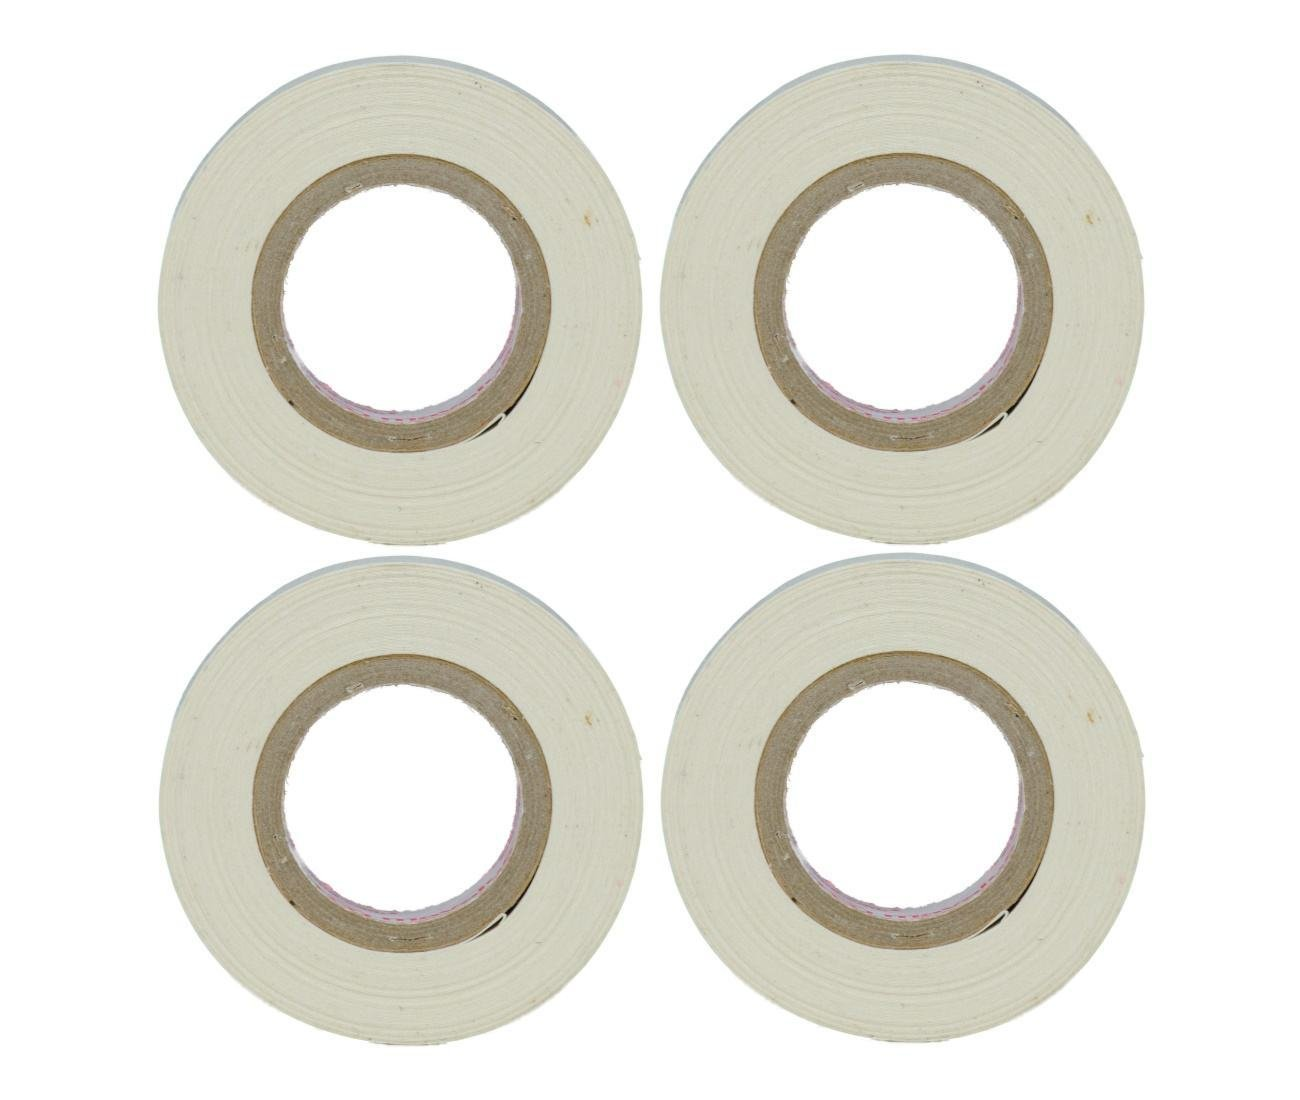 Mavalus Tape 3/4'' Wide x 1'' Core (9 yards long) 4 Pack